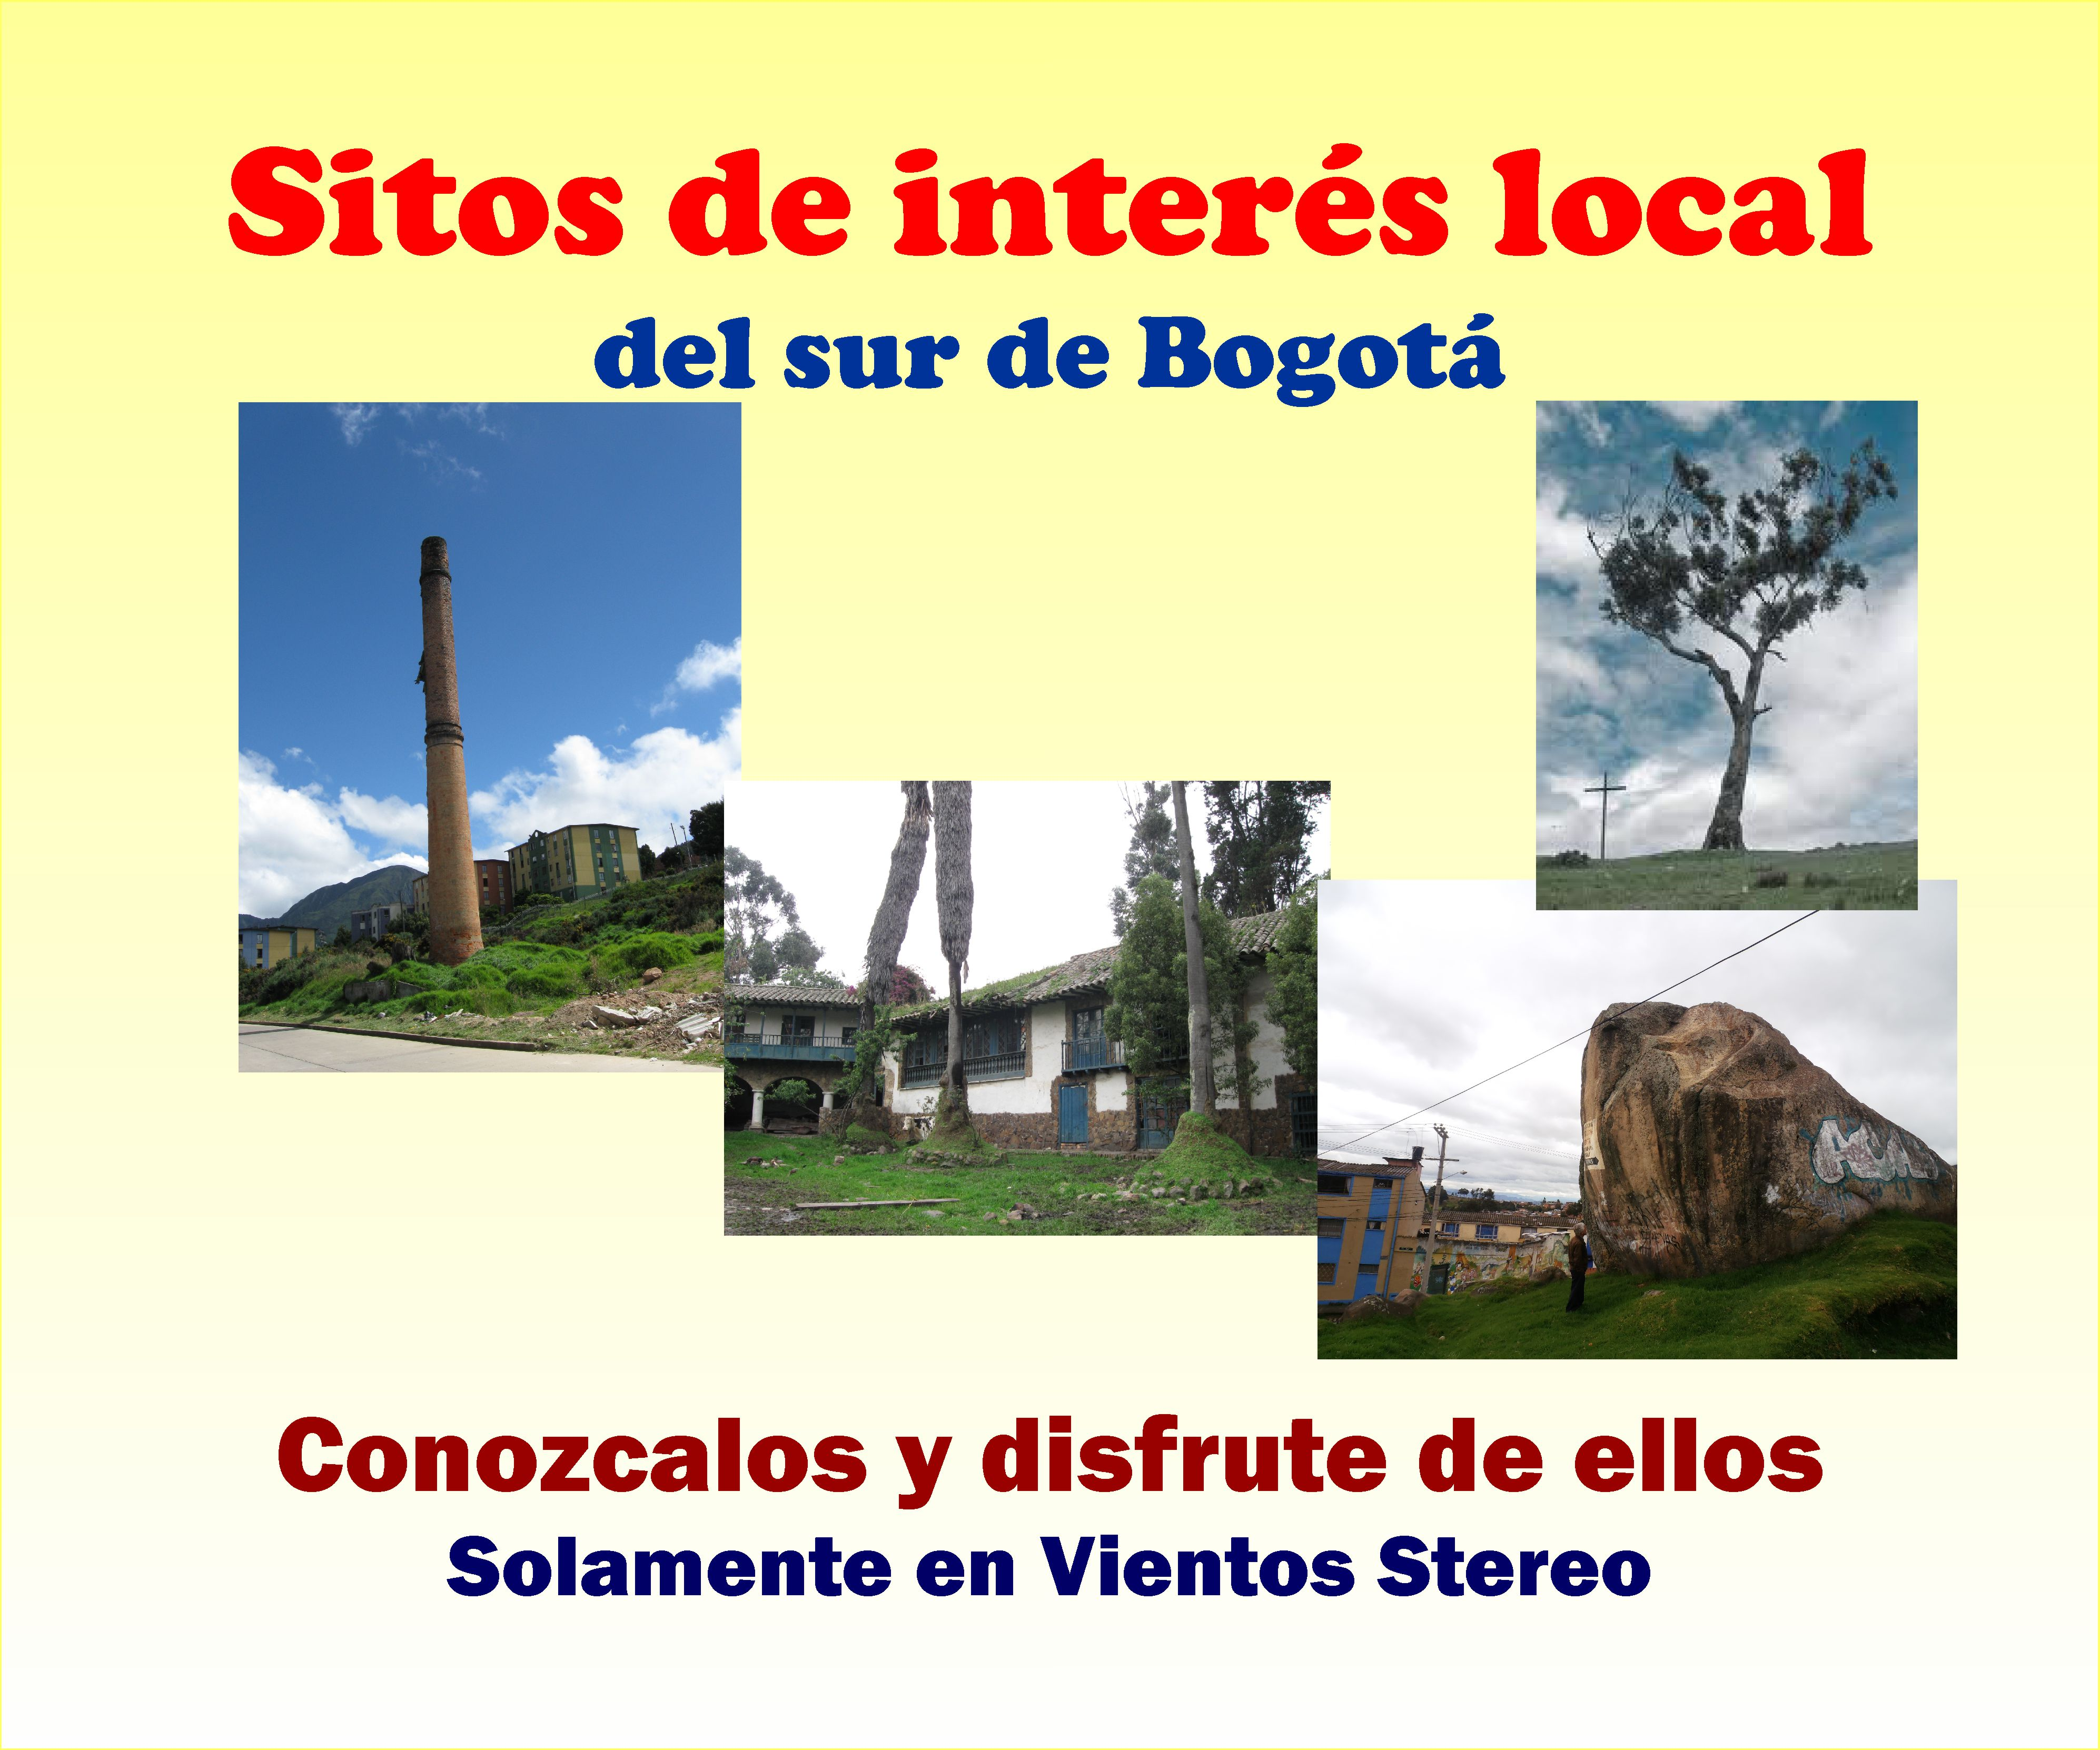 Sitios de interés local